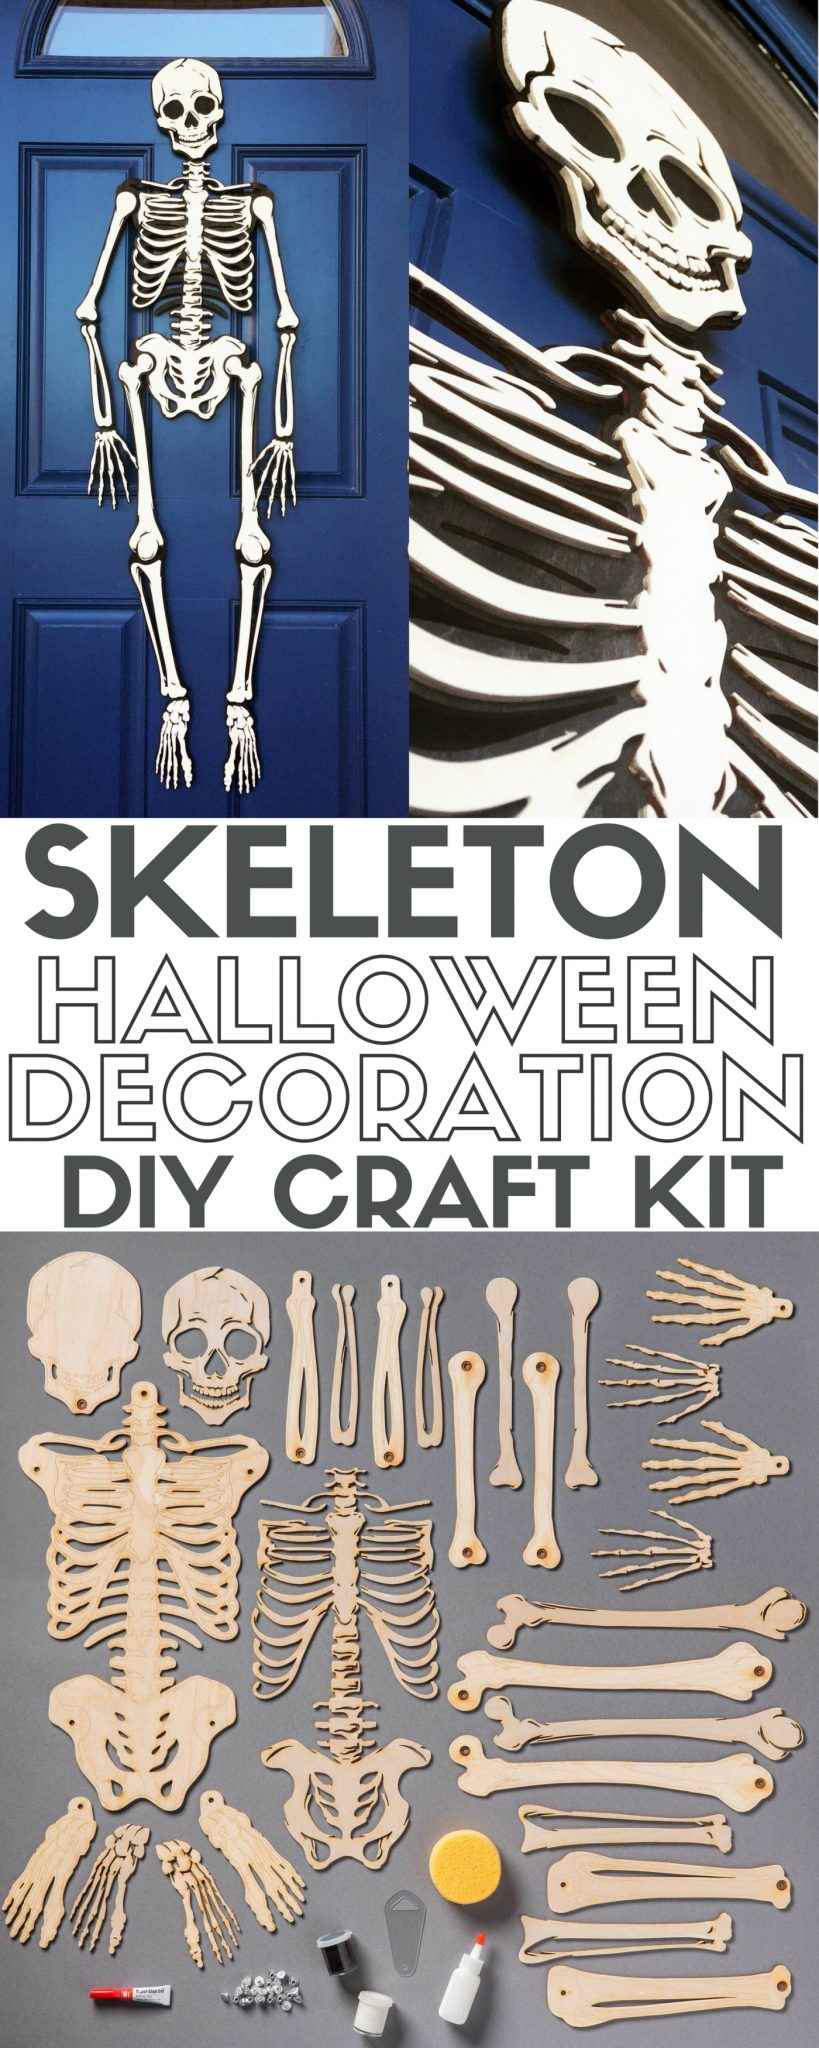 mr bones craft kit halloween skeleton laser cut wood home - Skeleton Halloween Decoration